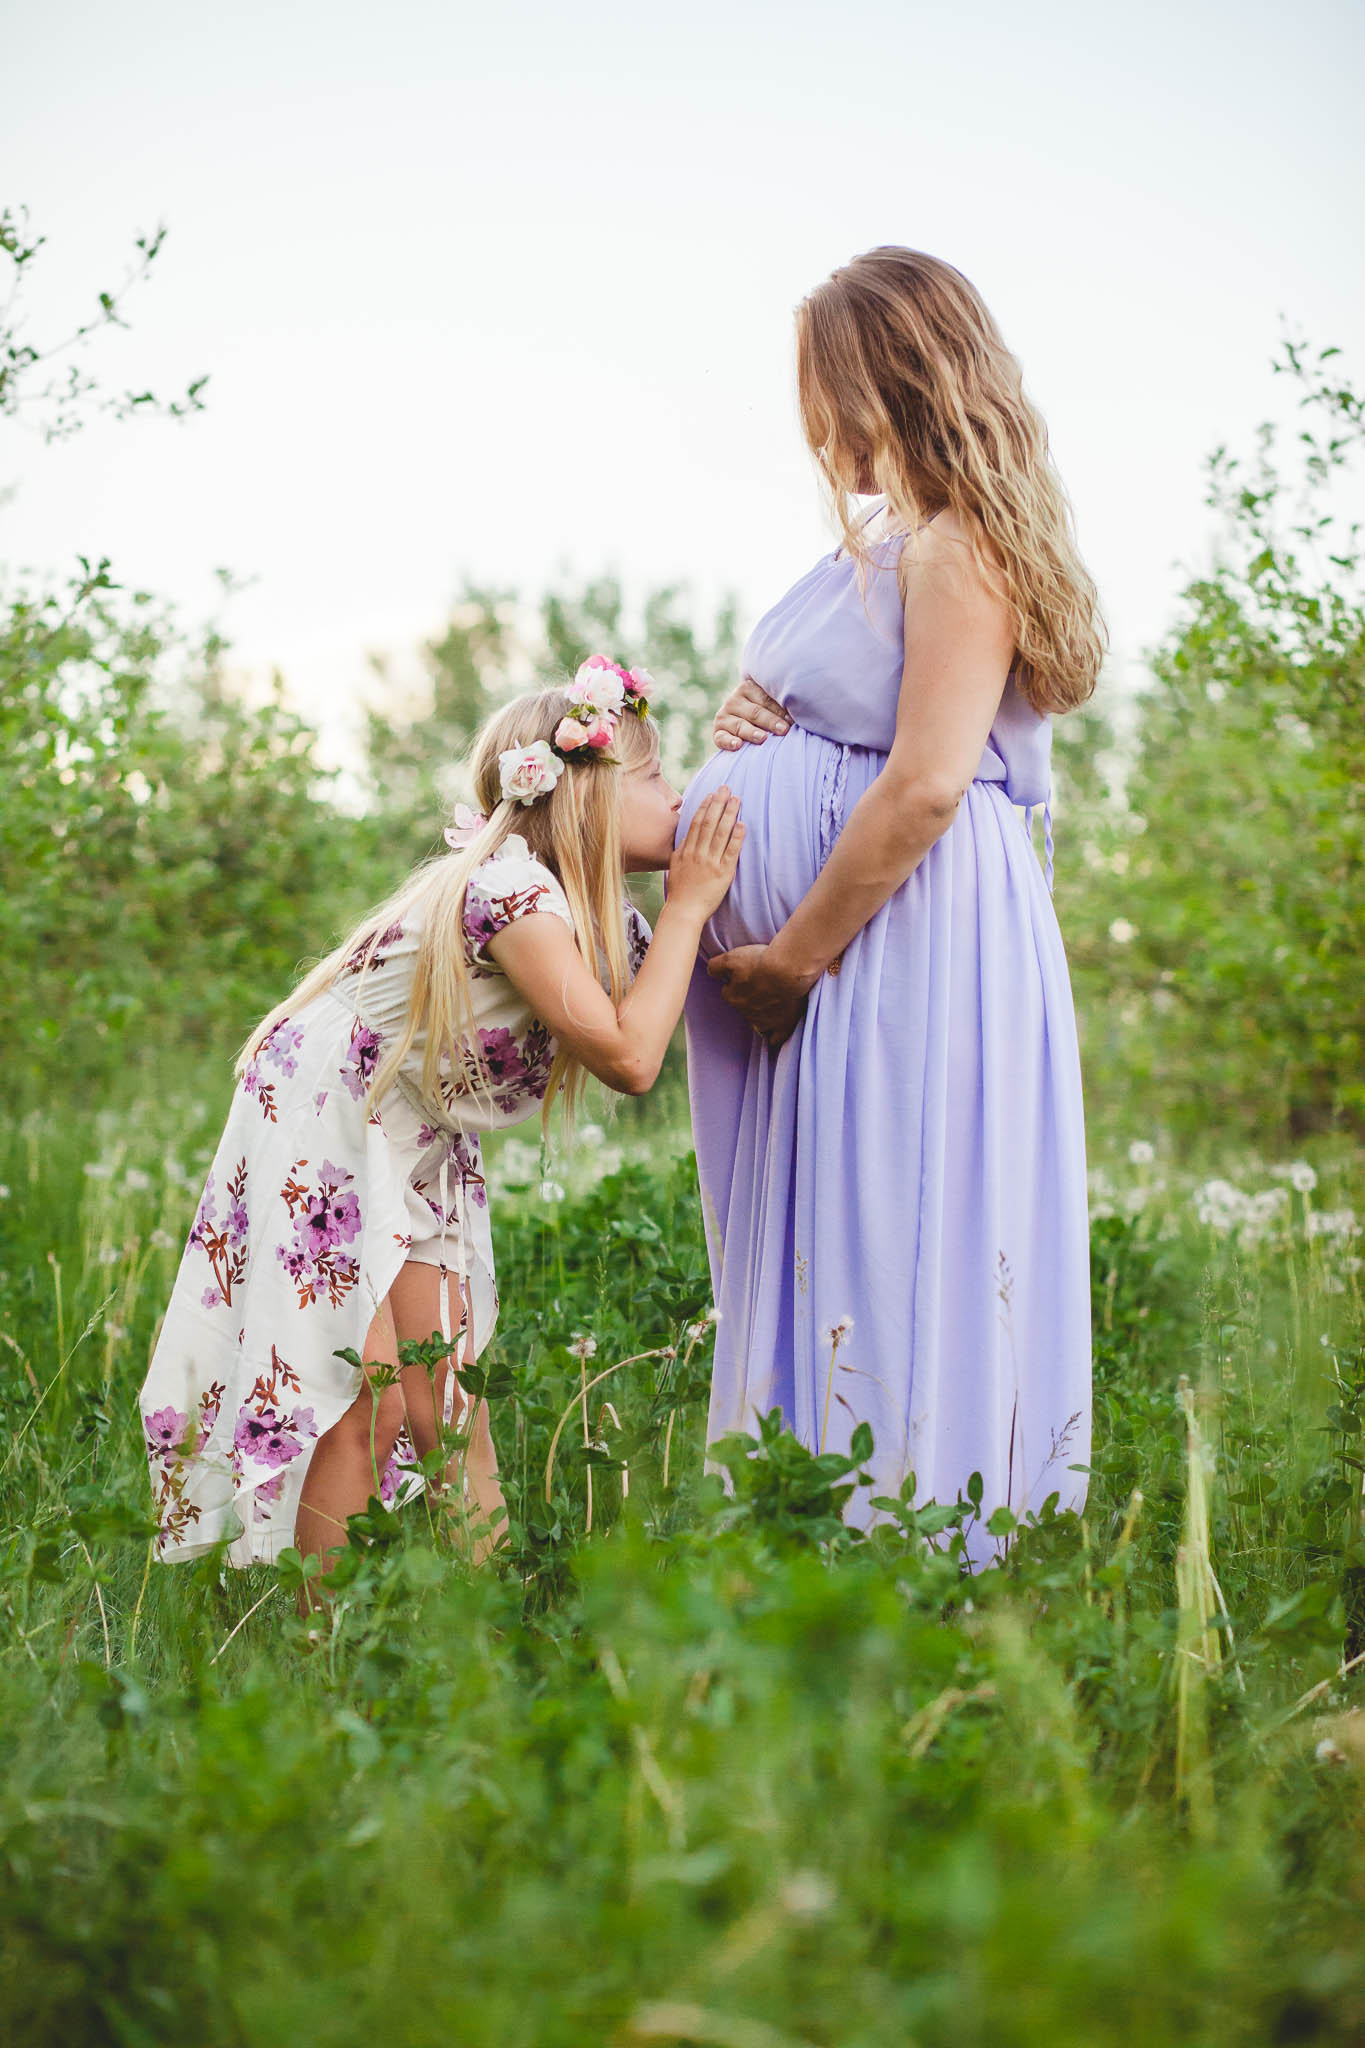 Amy D Photography- Maternity Photos- Mother and Daughter Maternity- Orchard Maternity Photos- Apple Orchard Maternity- Evening Maternity Shoot- Barrie Newborn And Maternity Photographer (27 of 67).jpg